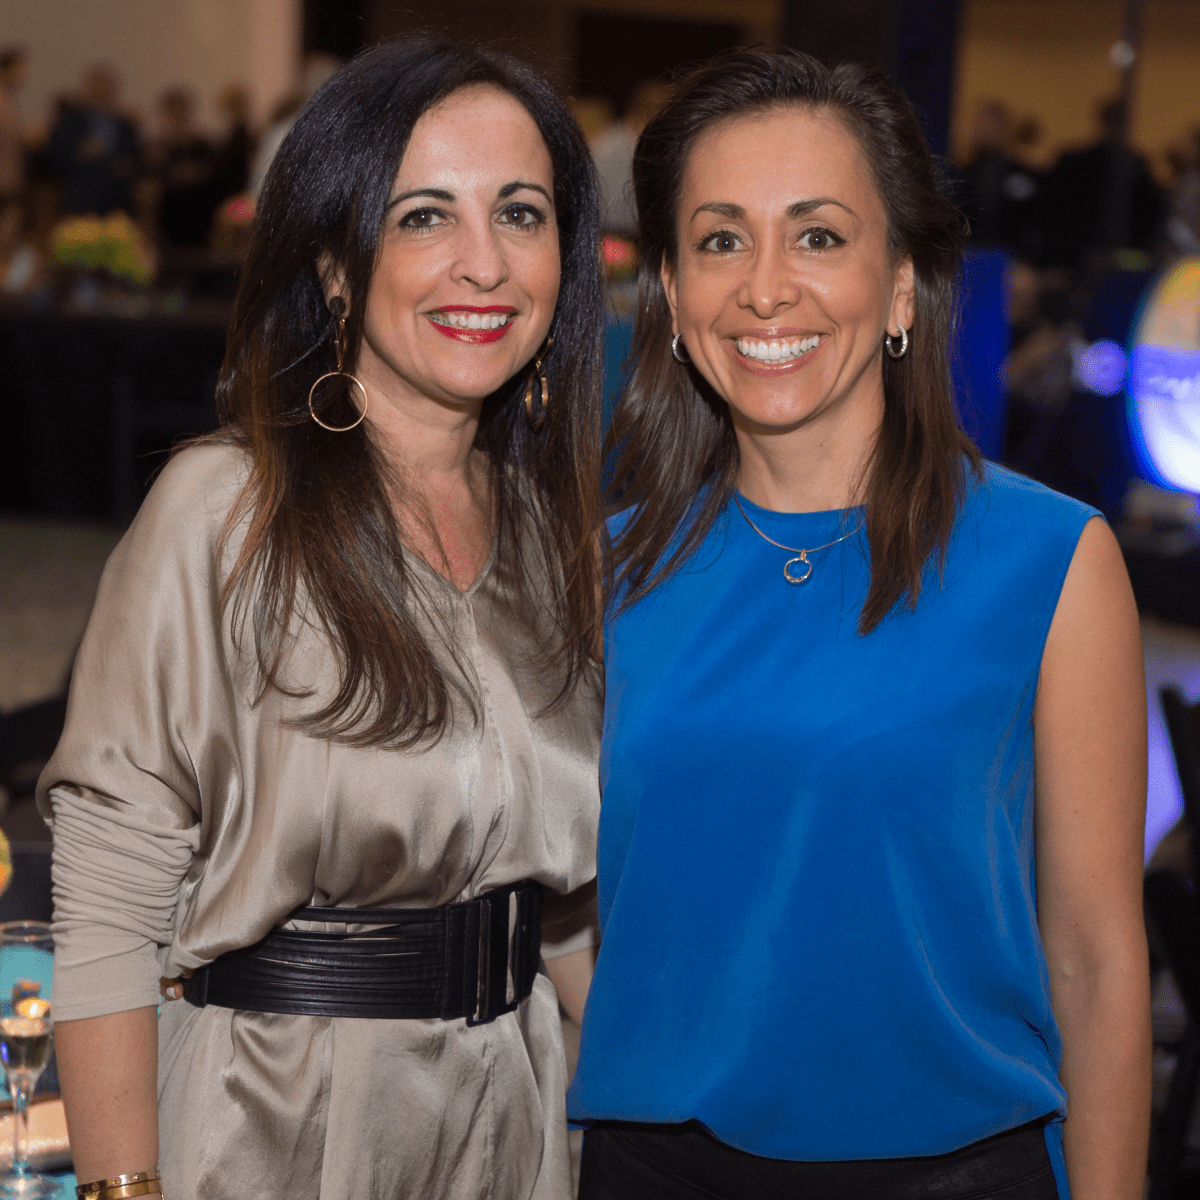 Silvia Salle, Johanna Donson at Glassell Benefit 2017